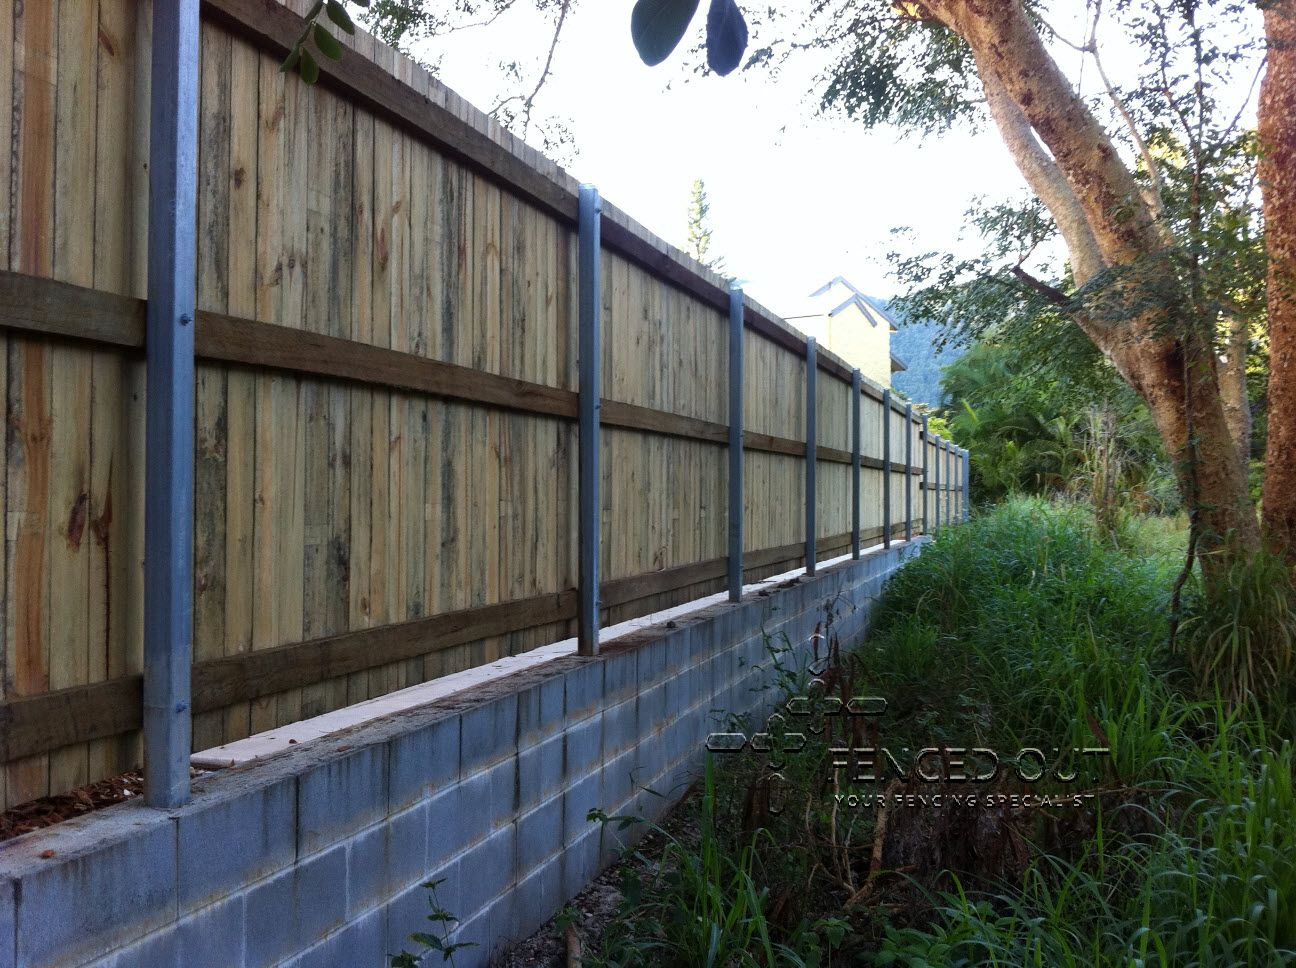 Timber Fence With Retaining Wall Timber Fencing Retaining Wall Outdoor Structures